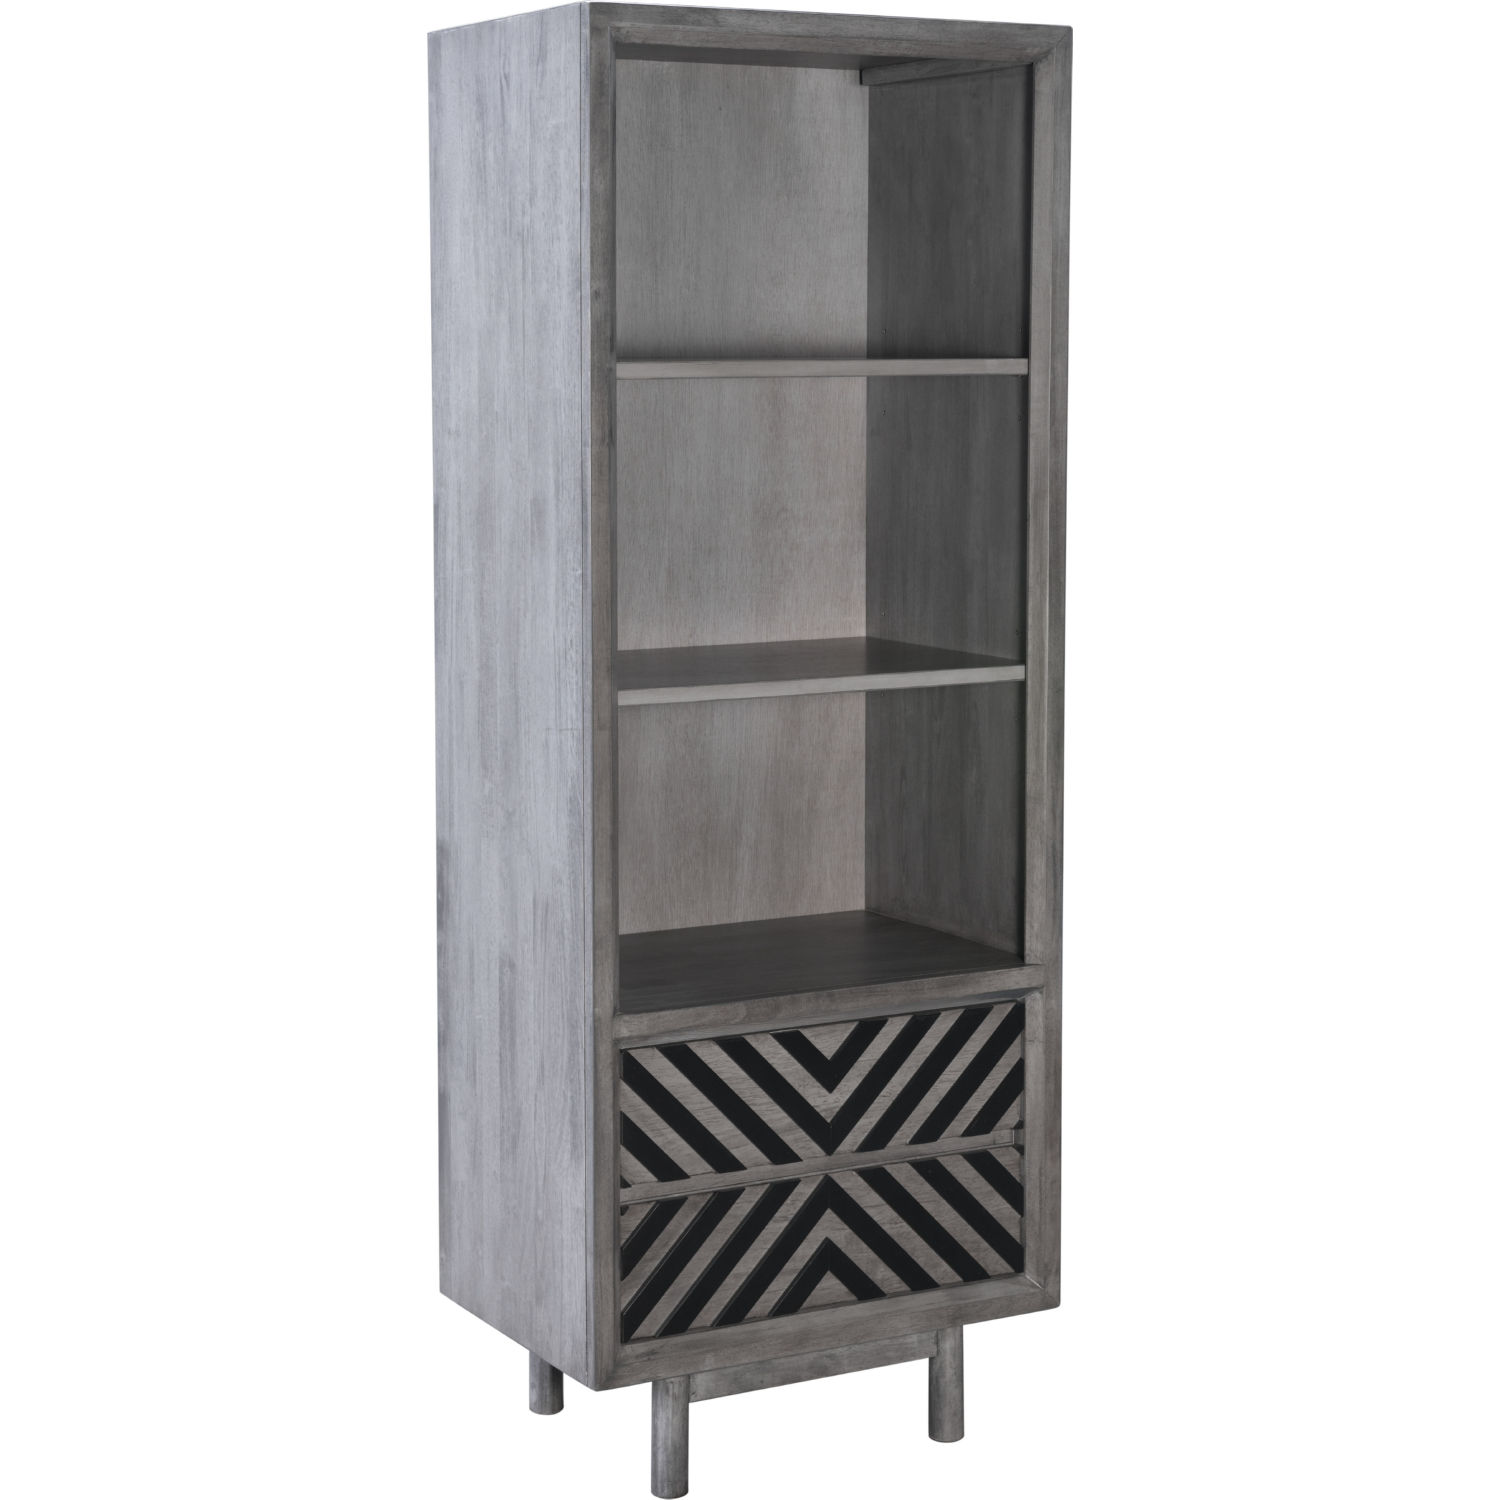 Raven Narrow Tall Bookcase In Old Gray Black Wood Chevron By Zuo